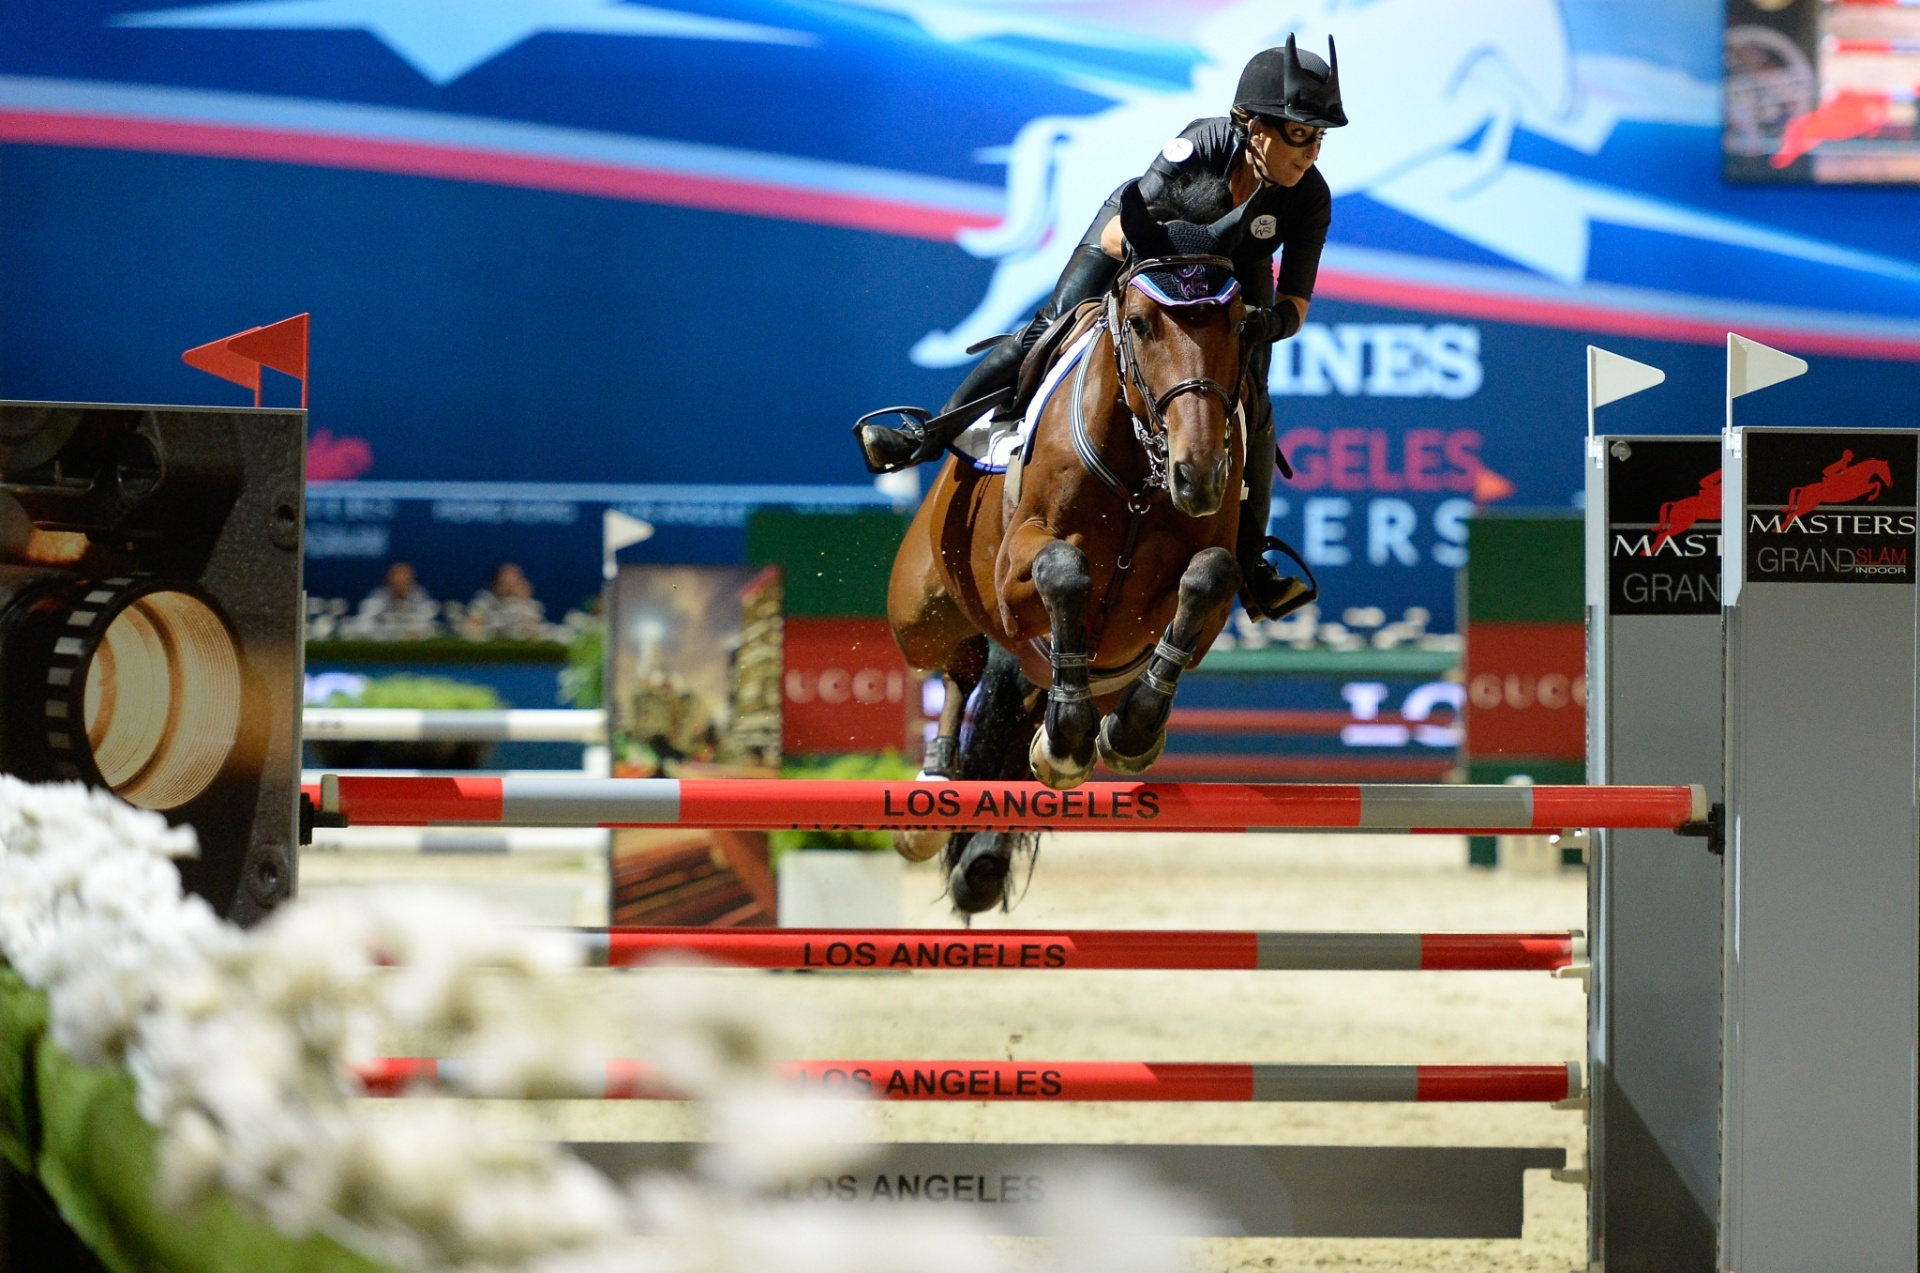 Laura Kraut no evento de caridade do Longines Los Angeles Masters